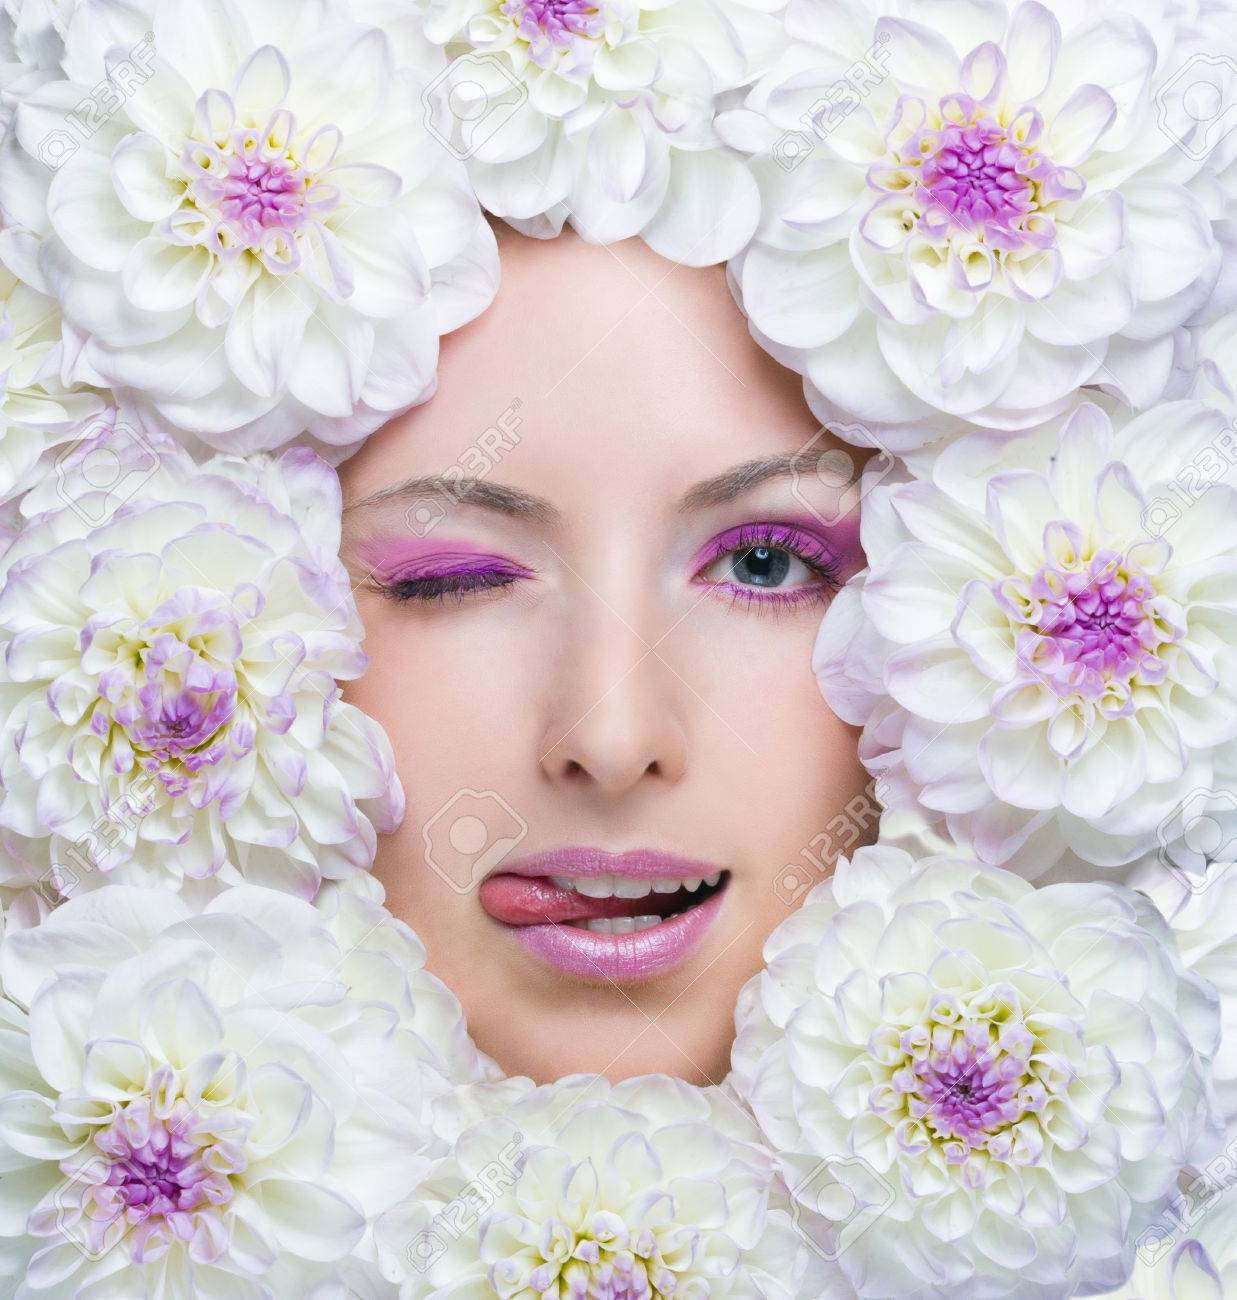 Beauty girl with white flowers around her face dahlia flowers beauty girl with white flowers around her face dahlia flowers beautiful makeup beauty concept stock photo izmirmasajfo